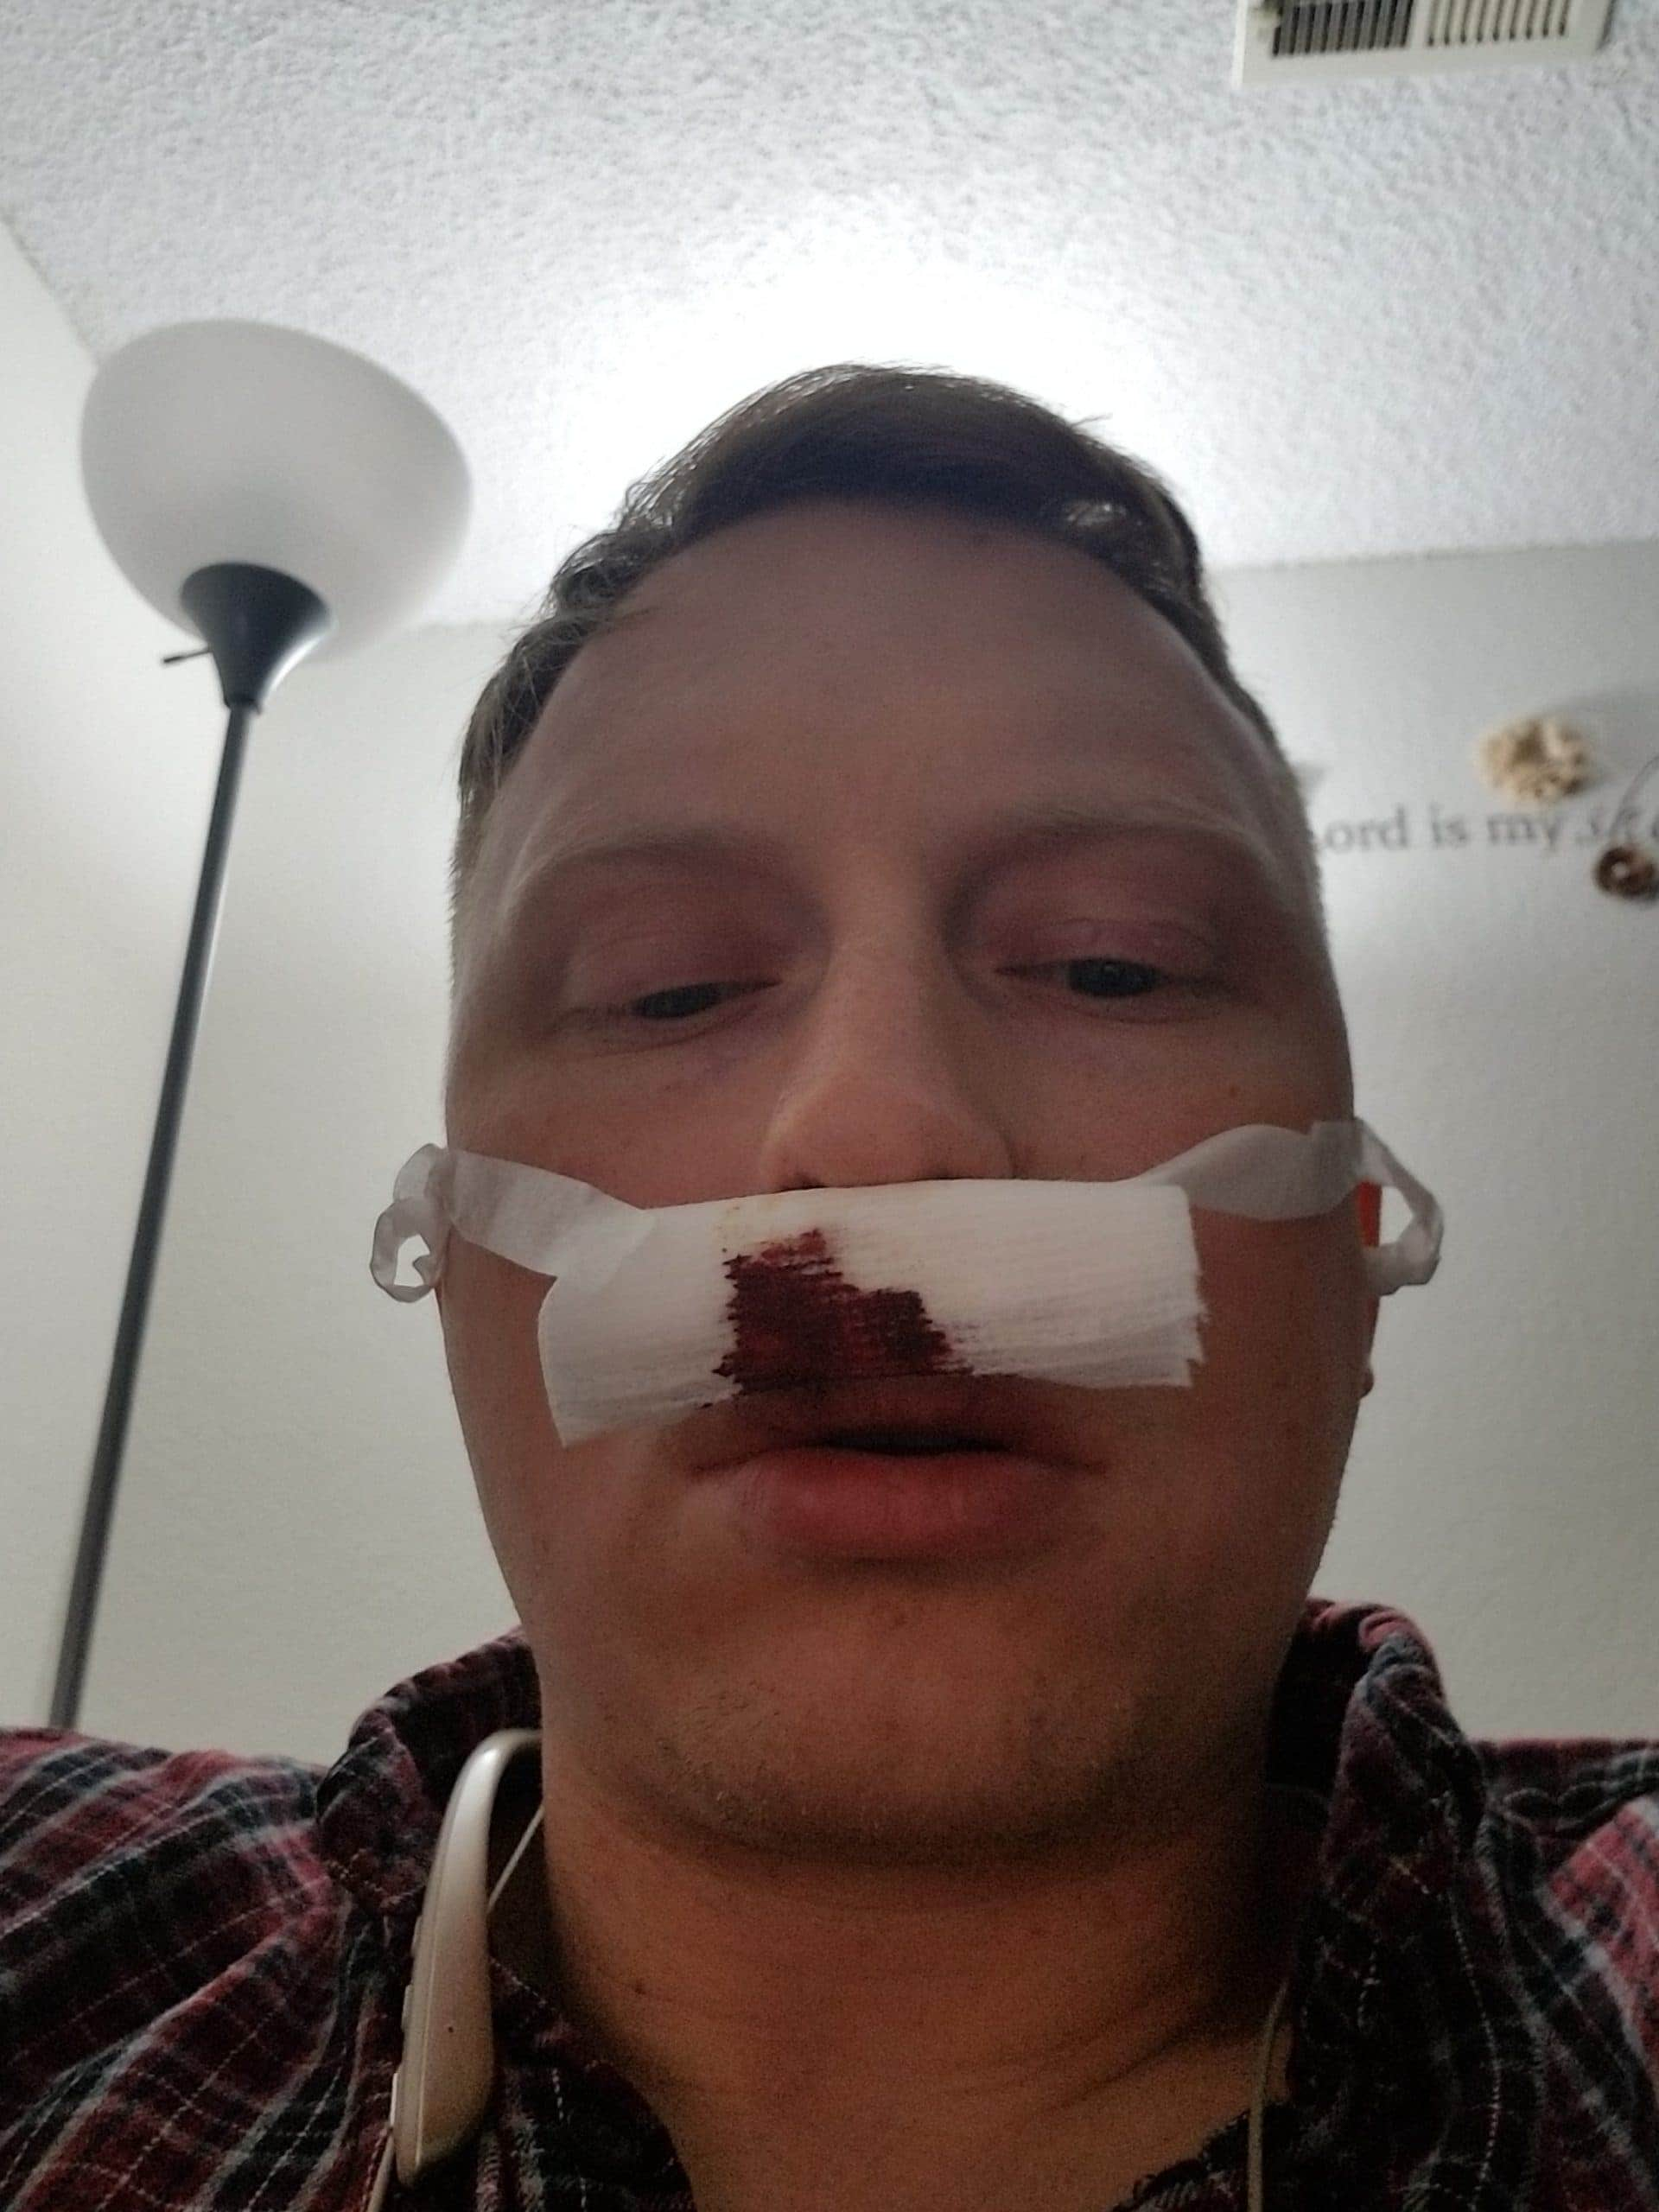 Post septoplasty and turbinectomy bandages